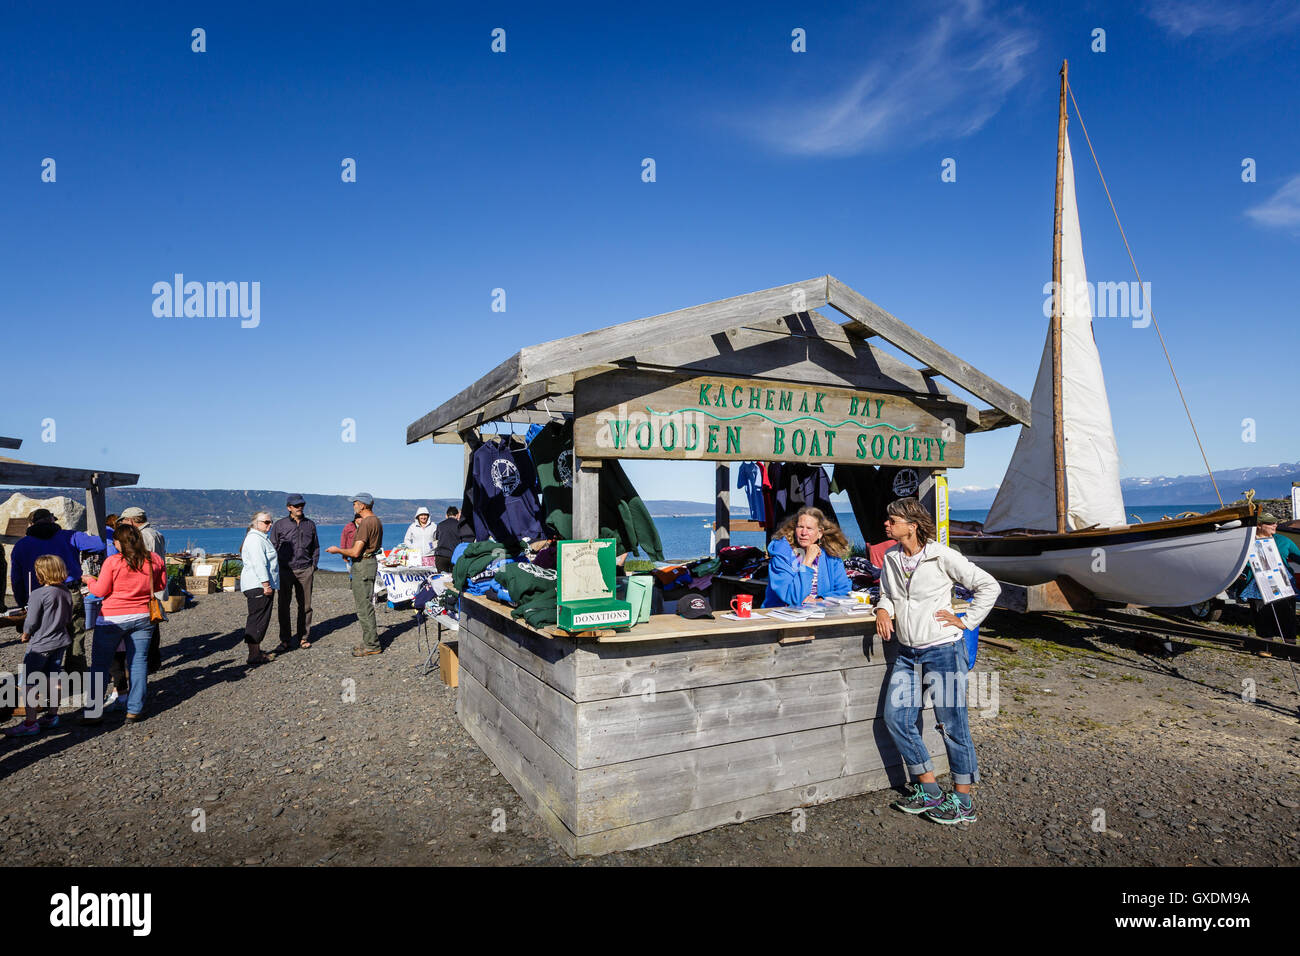 Women Stand By The Kachemak Bay Wooden Boat Society Booth At The